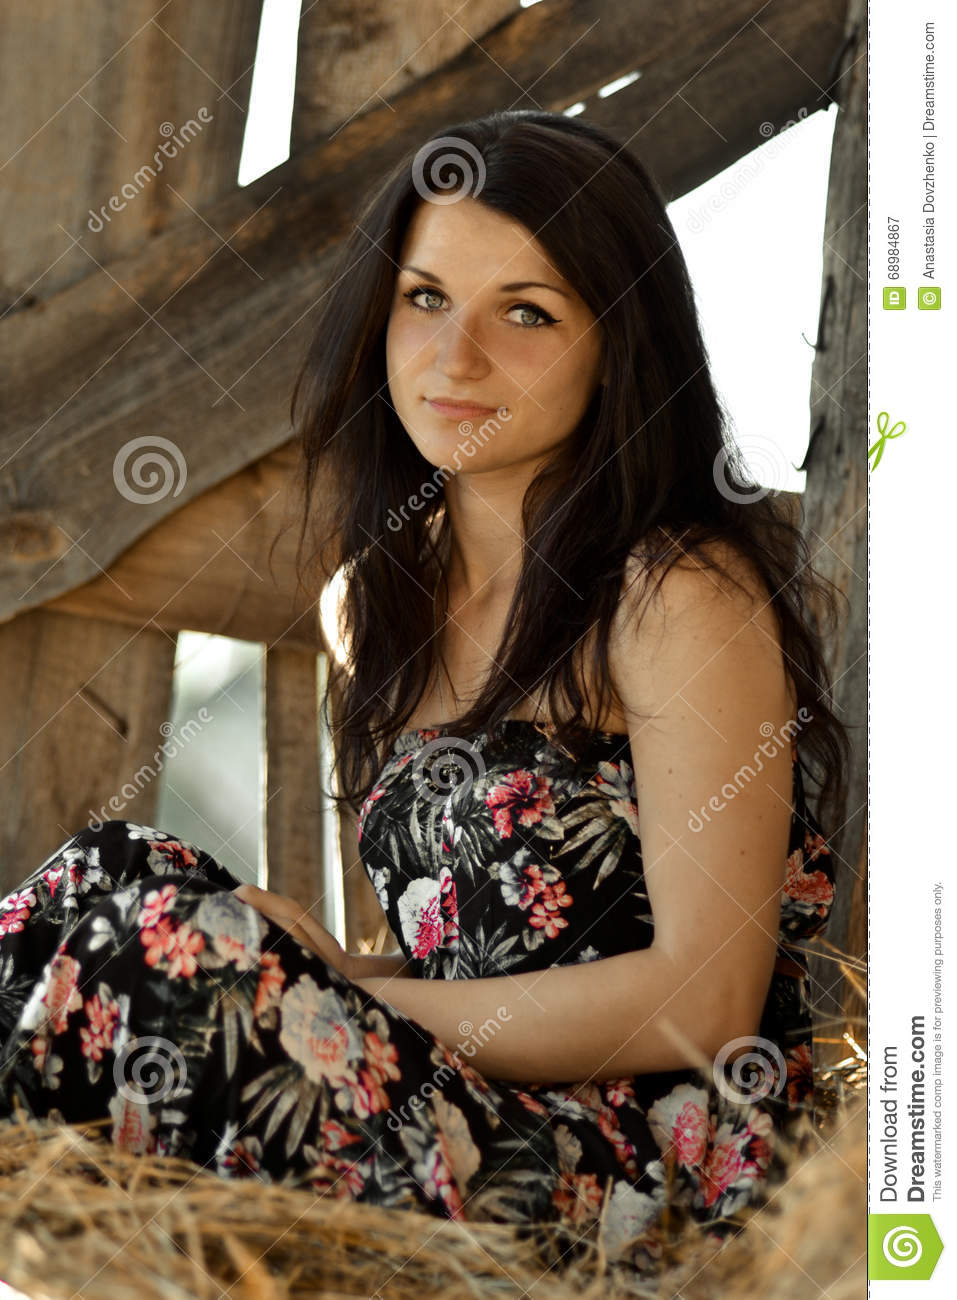 Image of: Face Closeup Portrait Of Excellent Girl With Drygoldenyellow Hay In Summerfashionable Amazing Girl On Hayhappycutelovelycheerfulsmiling Girl With Cute Smile Pixabay Very Beautifulattractivecutenicelovely Girl With Perfect Face